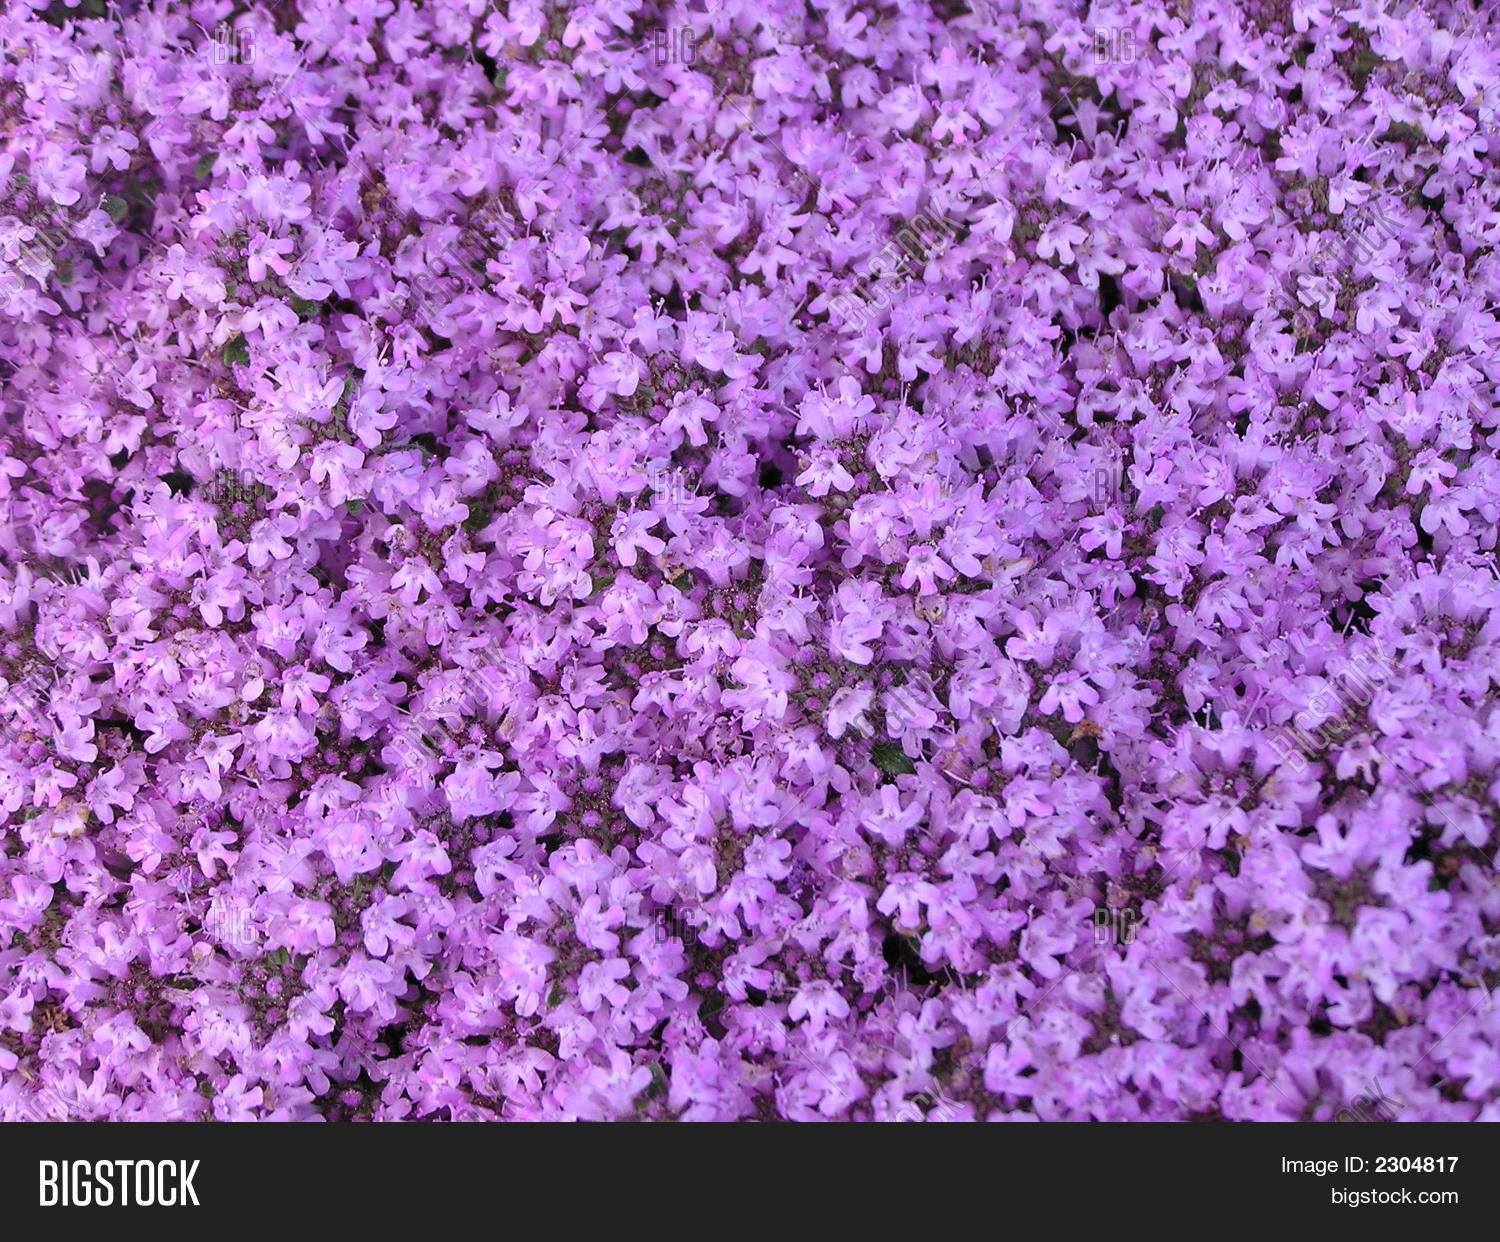 carpet of flowers mtg. purple carpet of flowers stock photo images bigstock mtg